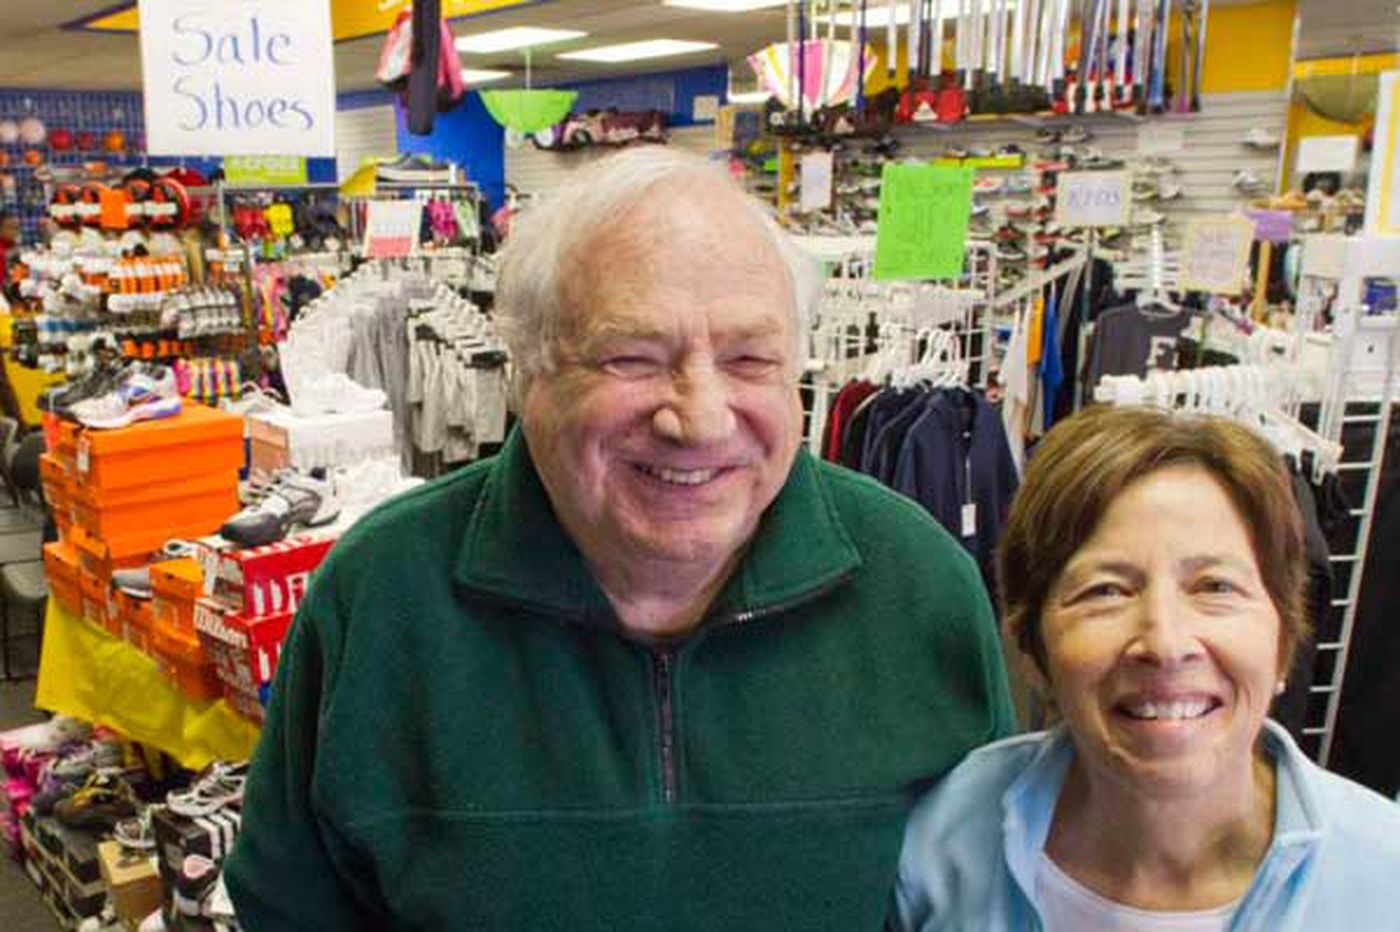 Sneaky Pete's, Ardmore athletic-shoe fixture, will close by May 1